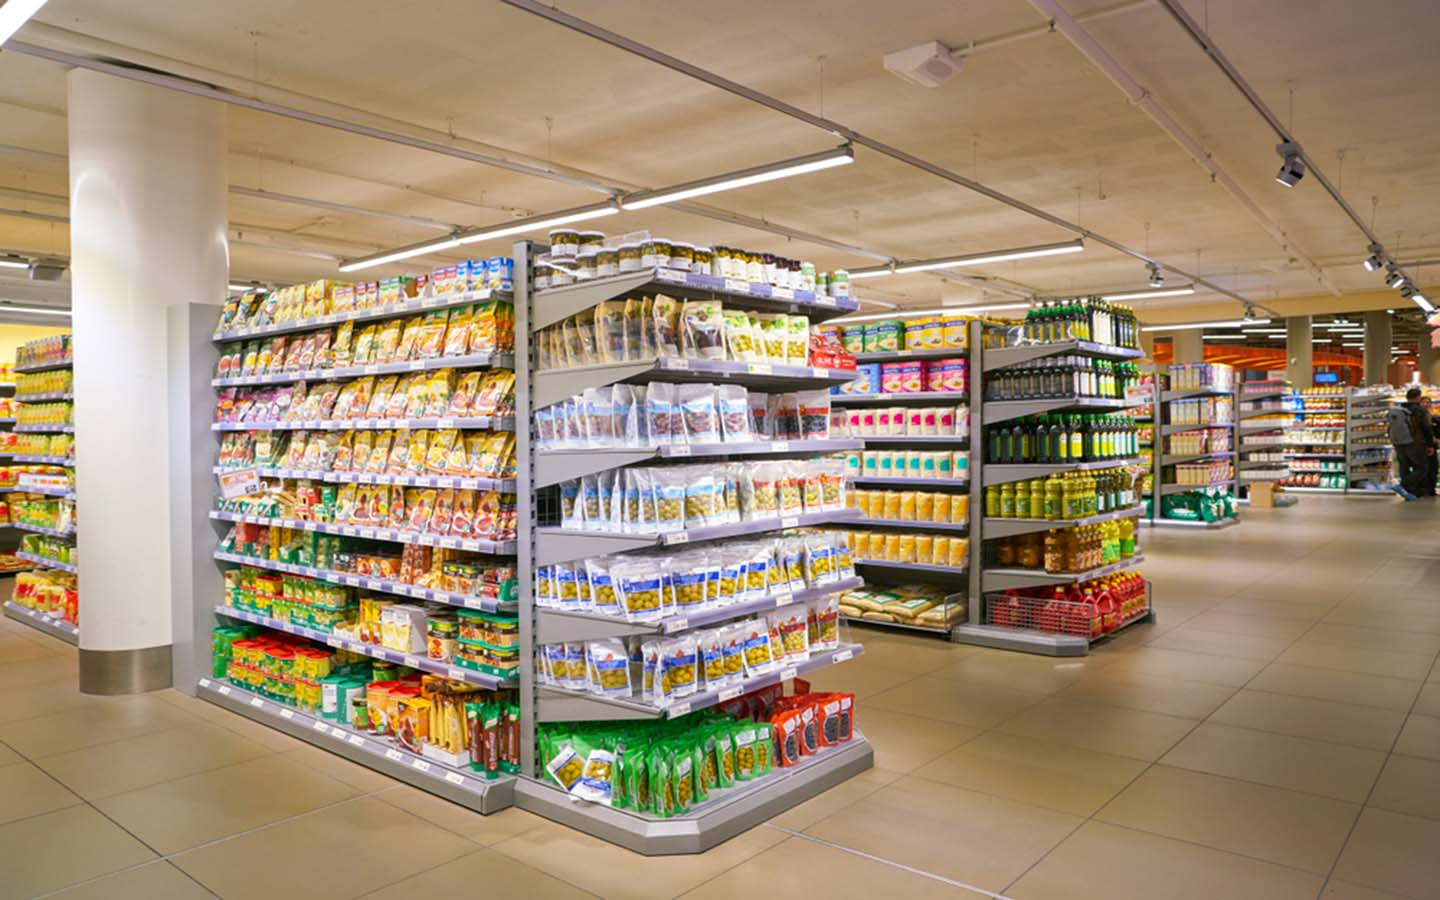 Nesto one of the best supermarkets in Ajman